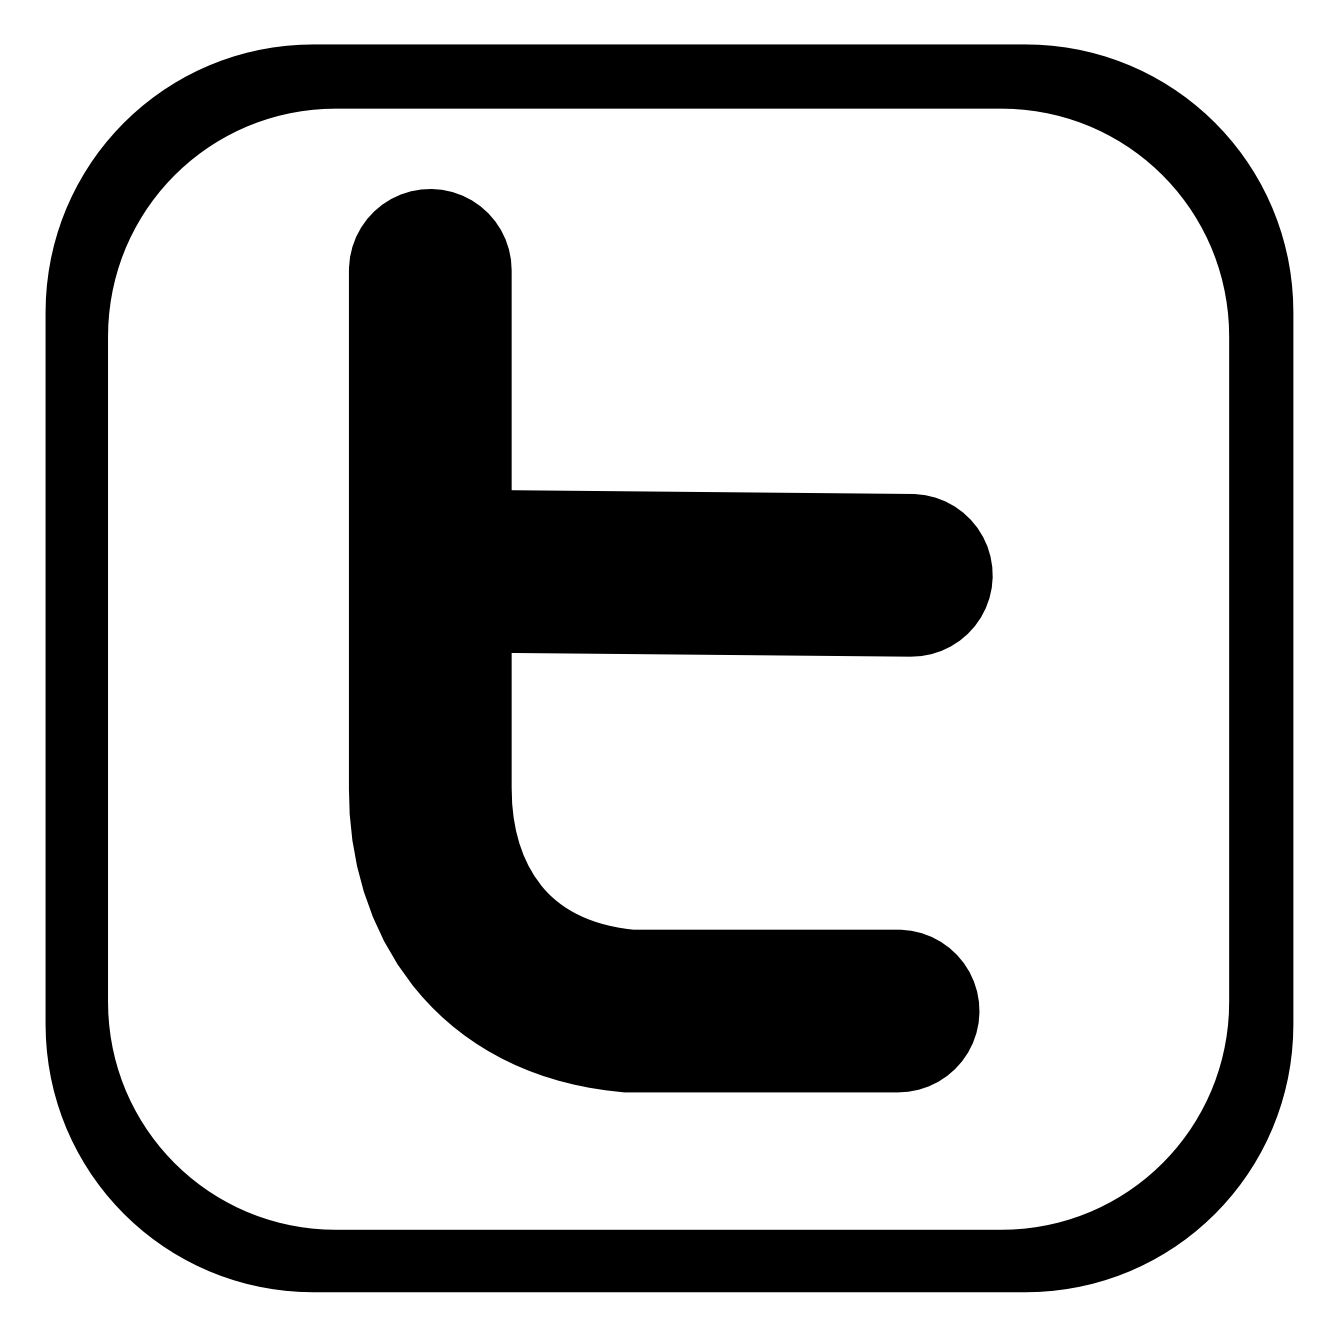 Twitter Icon Clipart.